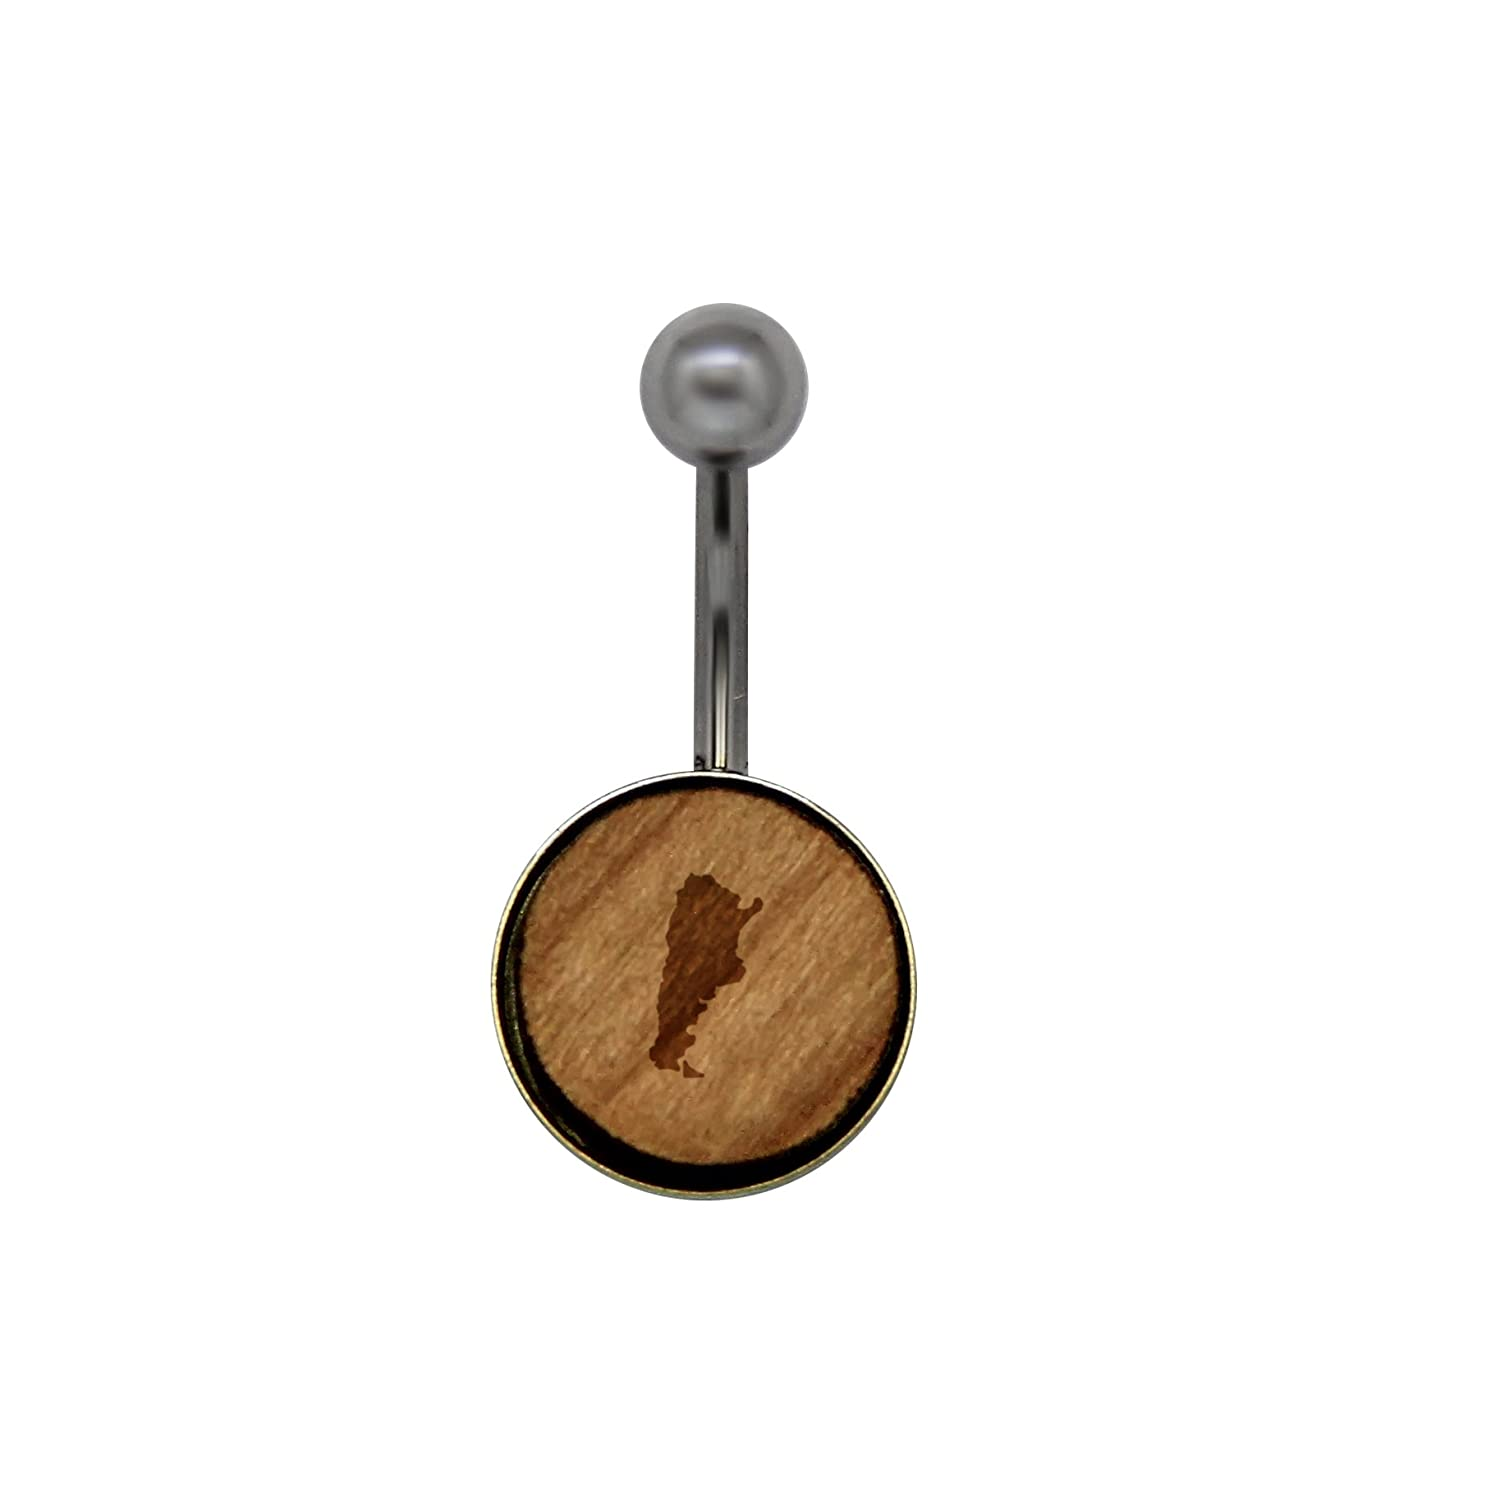 Rustic Wood Navel Ring with Laser Engraved Design Size 14 Gauge Wooden Navel Ring Argentina Surgical Stainless Steel Belly Button Rings